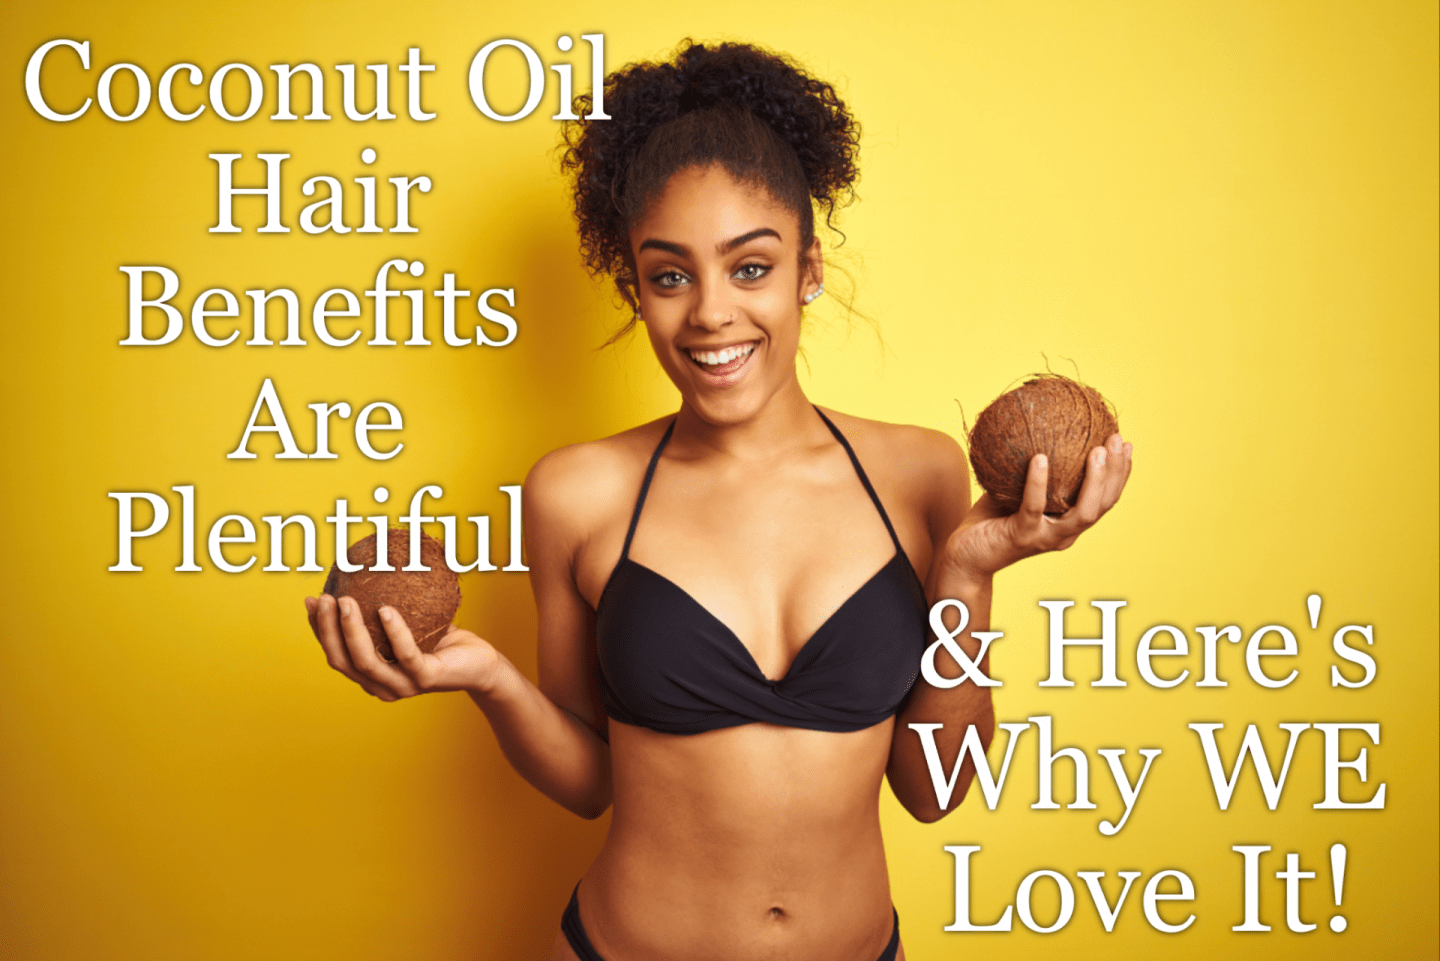 Coconut Oil Hair benefits are vast and many just assume it's only needed to seal your hair. Check out all this natural oil has to offer